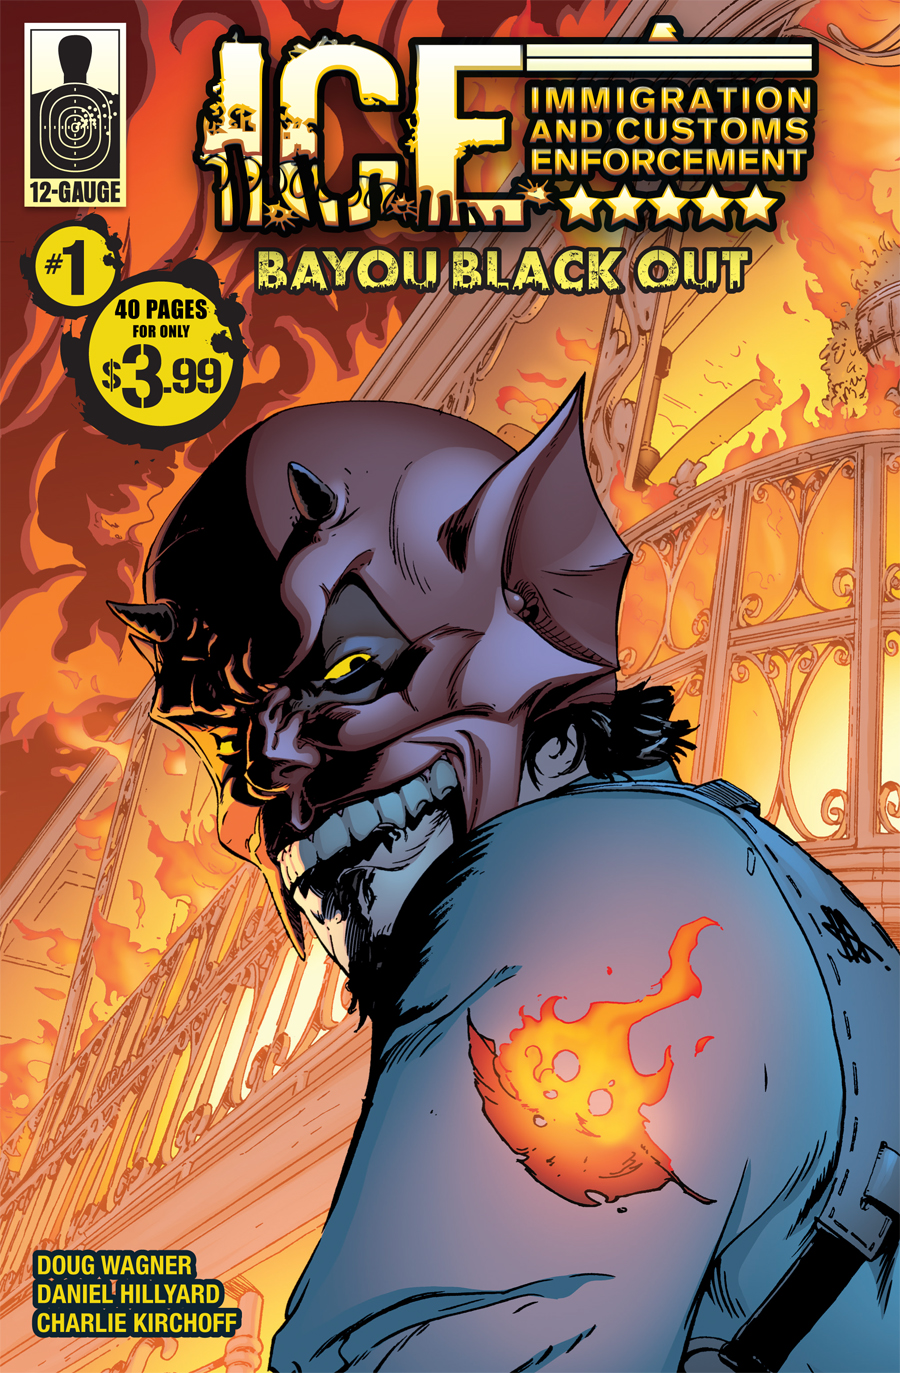 Preview: ICE: BAYOU BLACKOUT #1